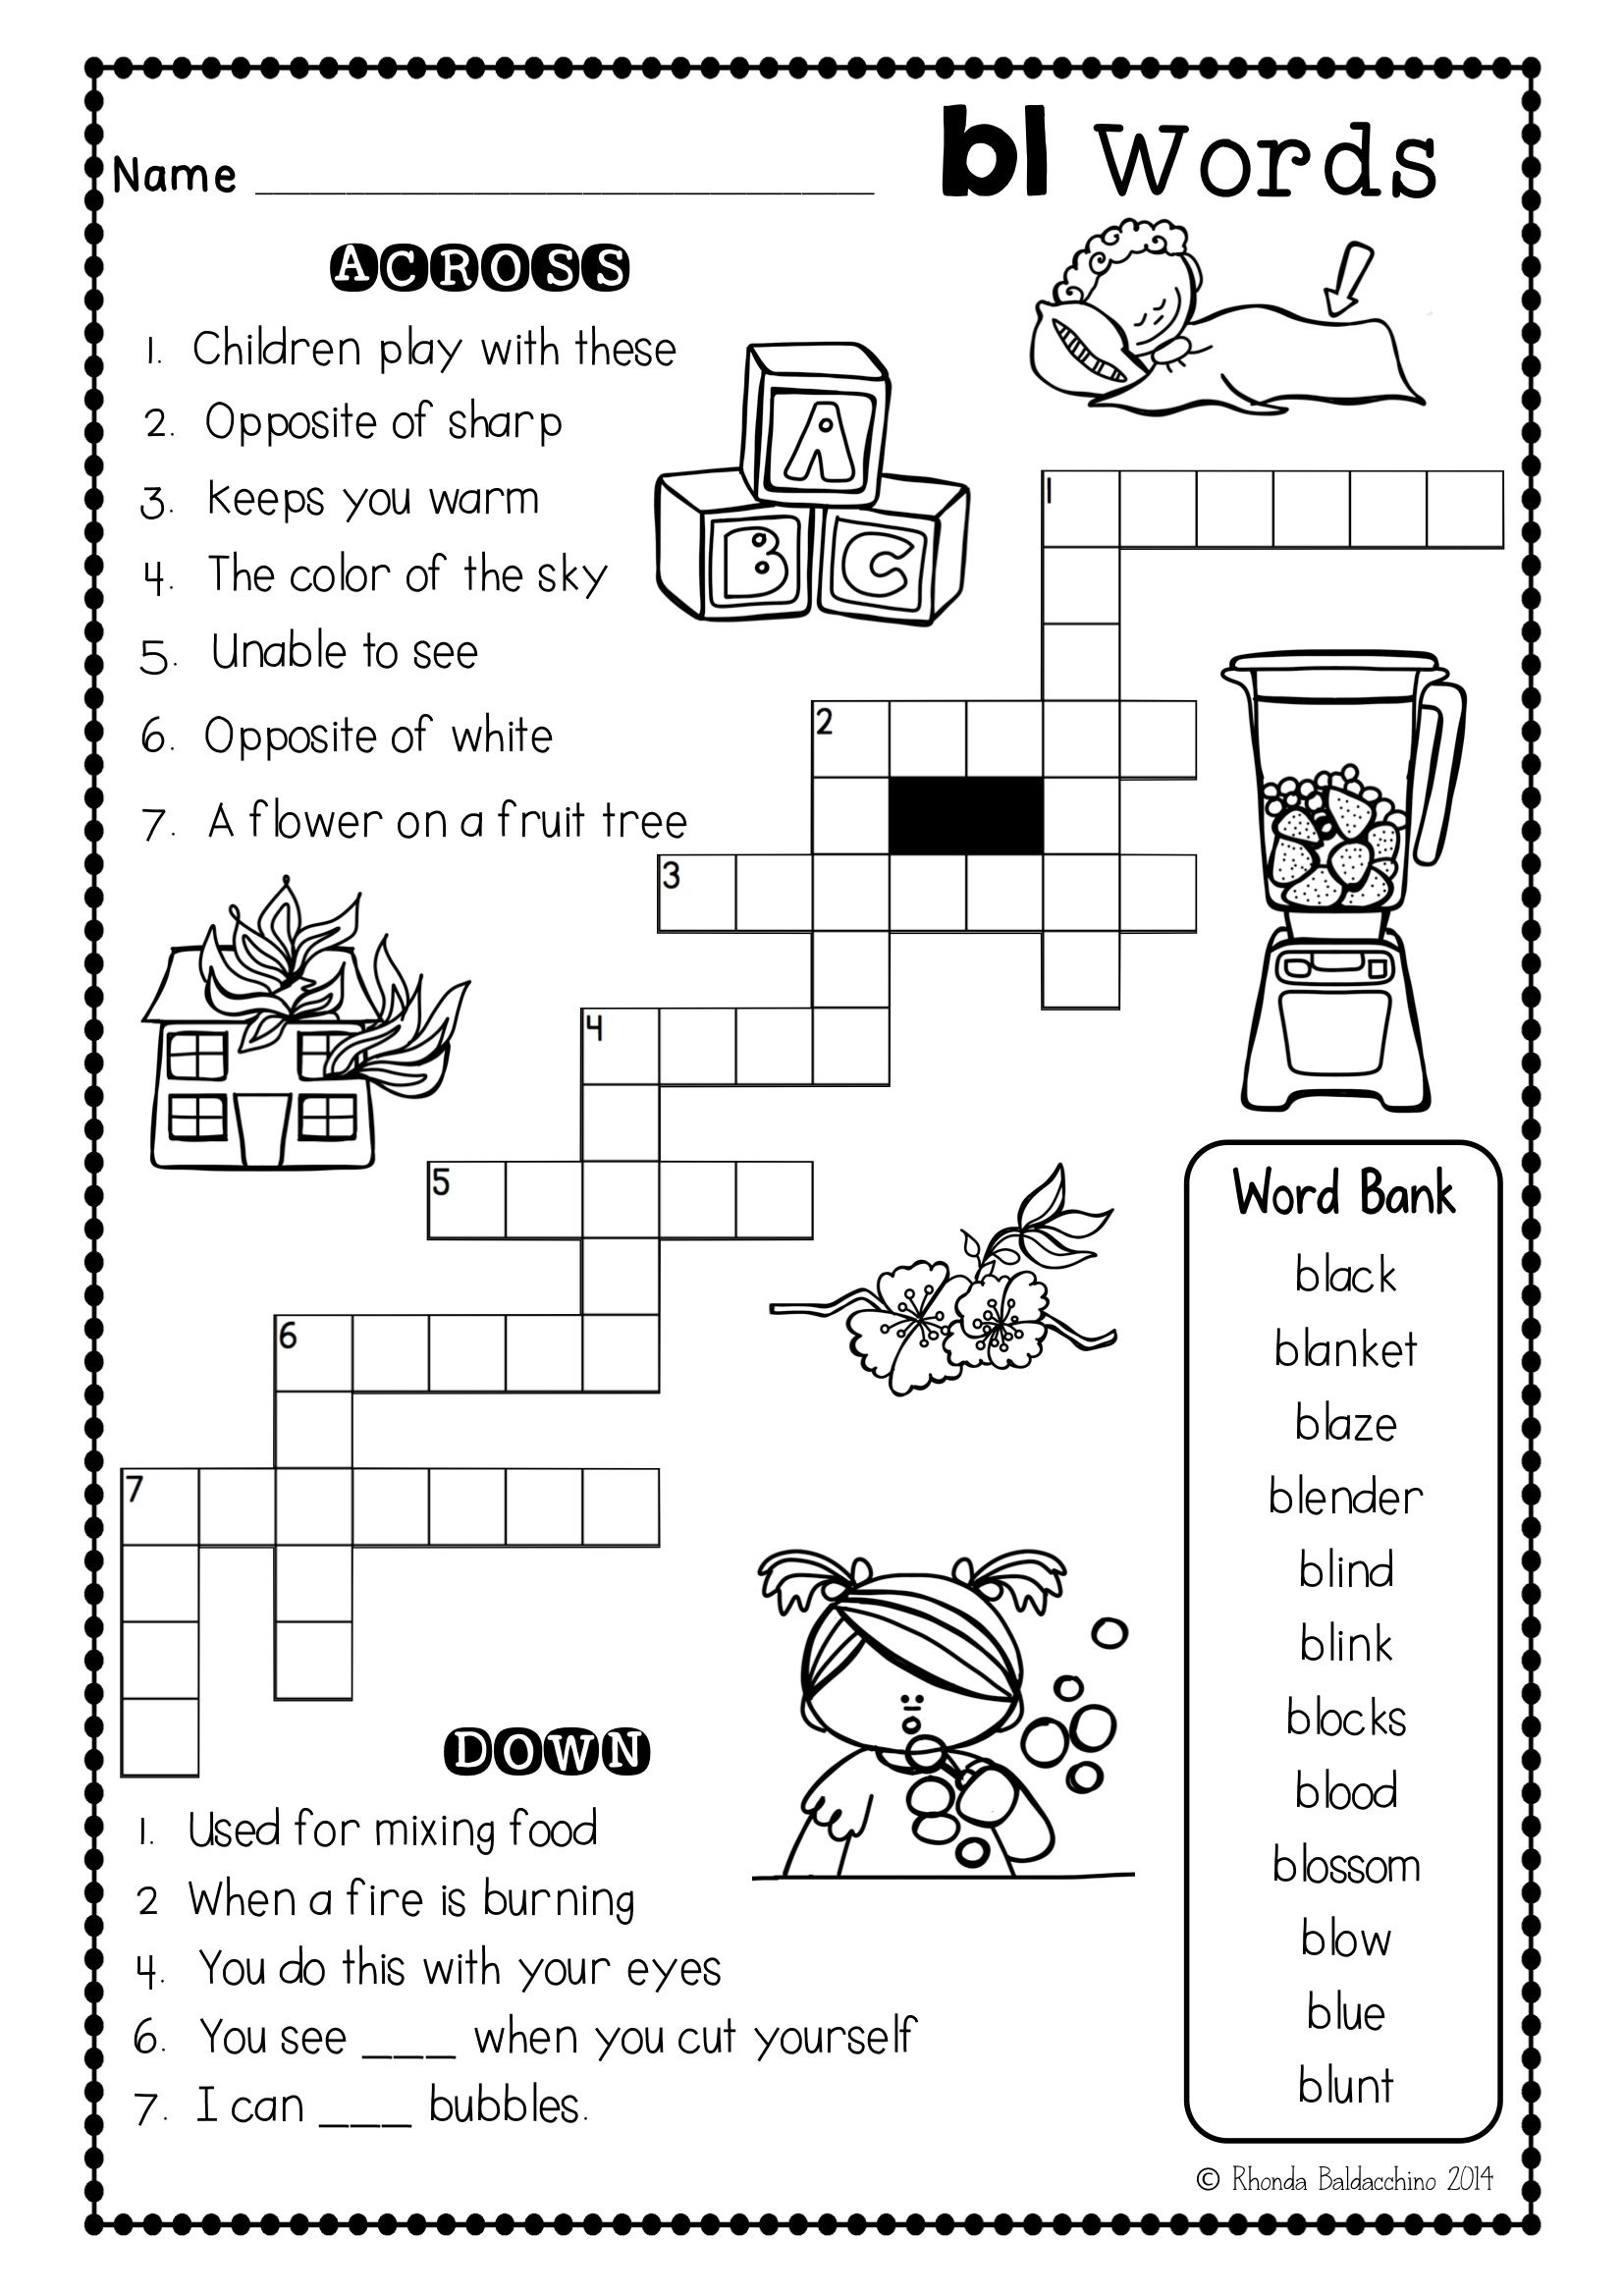 Fun Crossword Puzzles For Blends